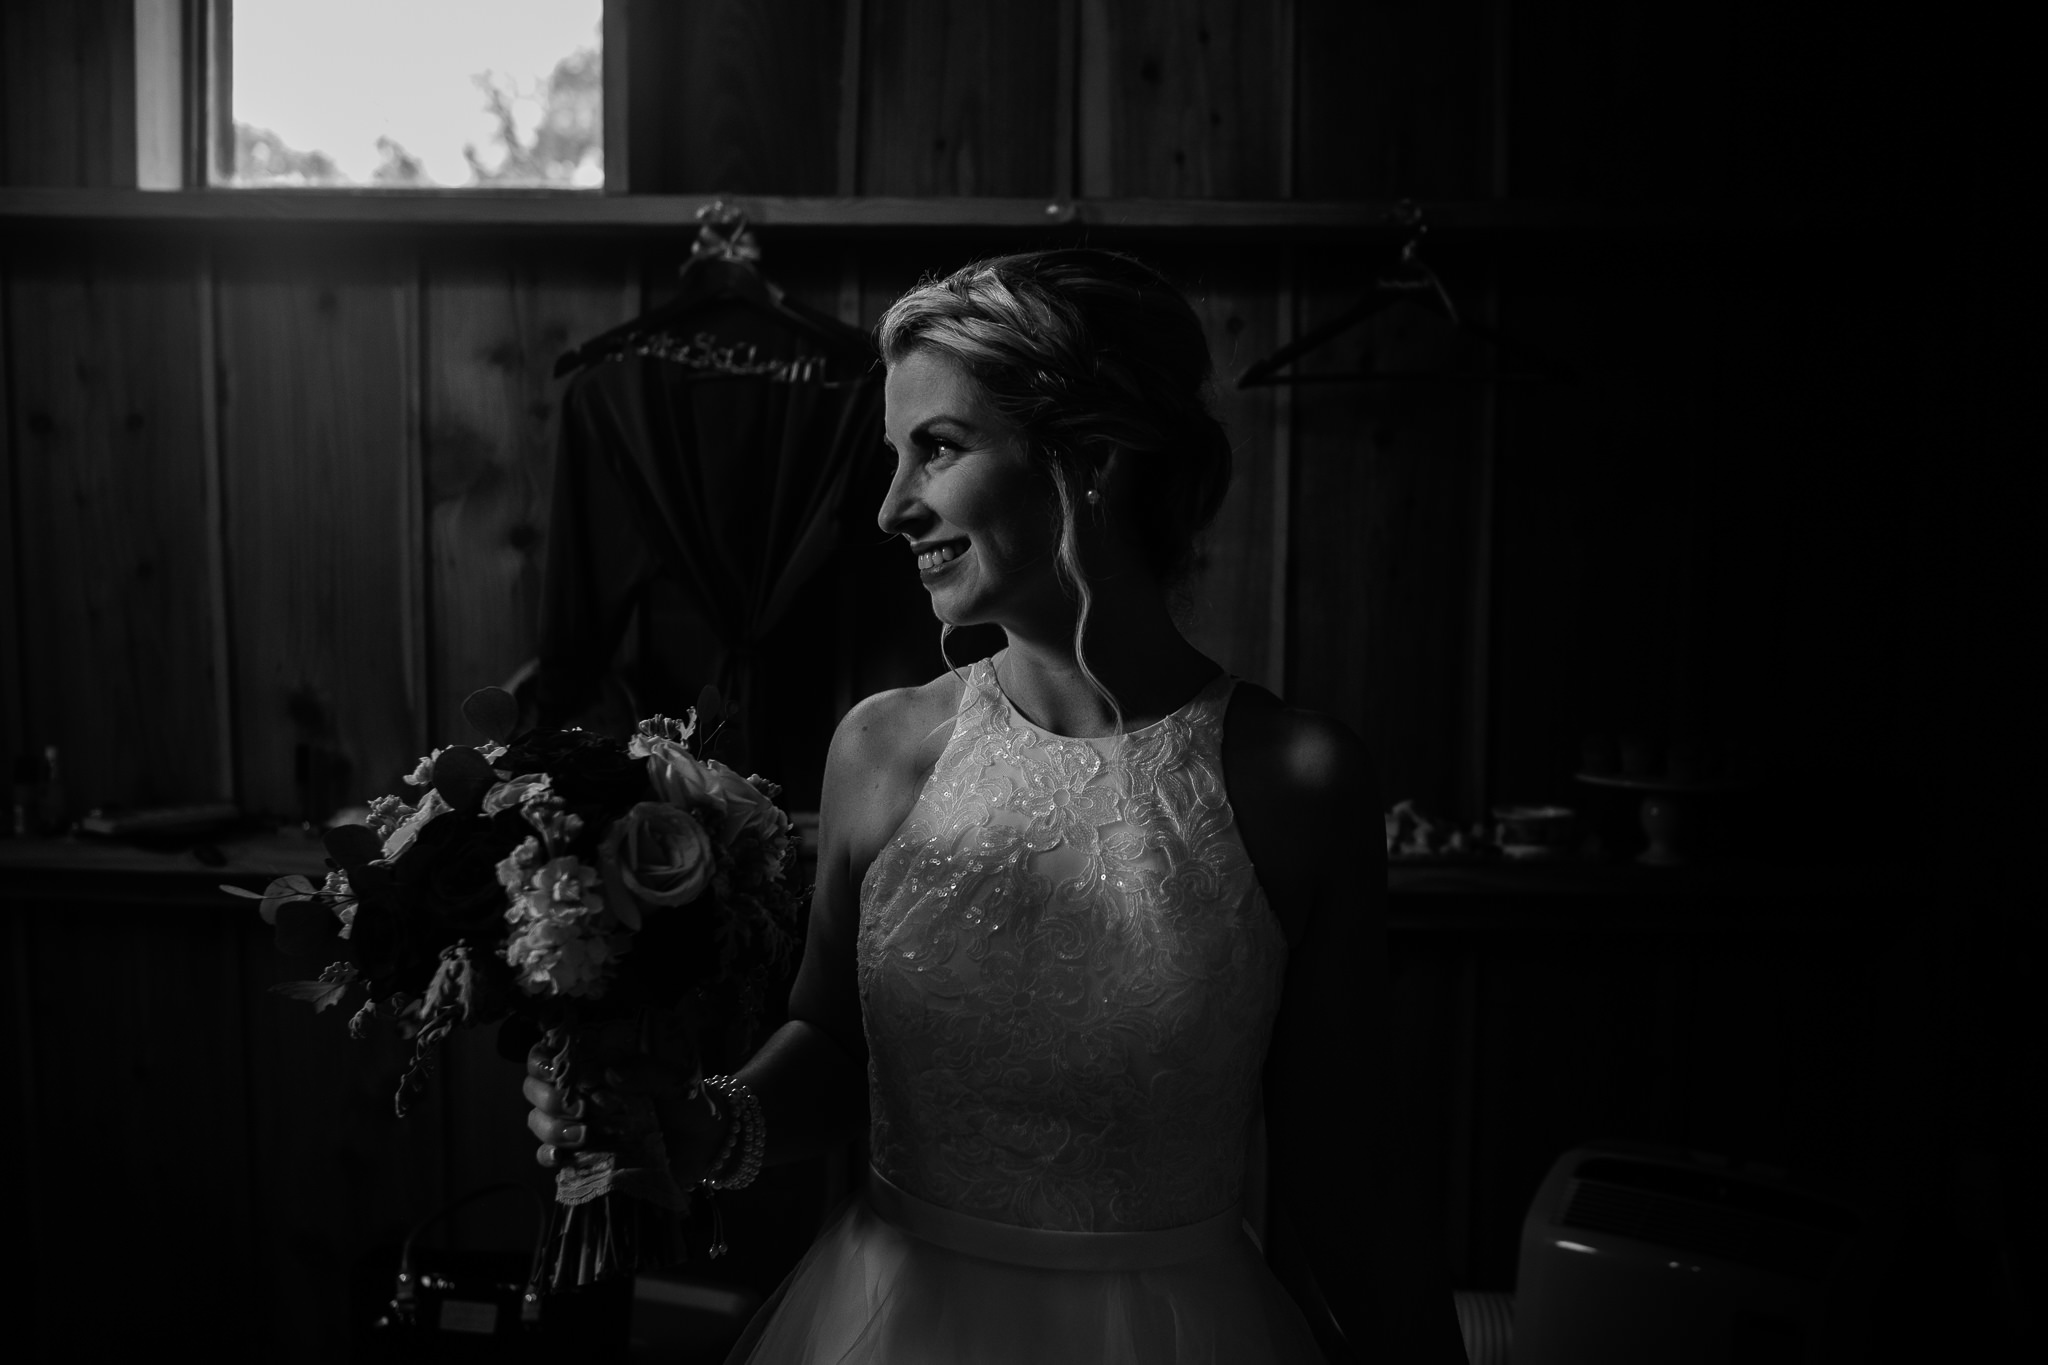 TAMPA_WEDDING_PHOTOGRAPHER_DRMZ_SPARROW_BARN_19.jpg